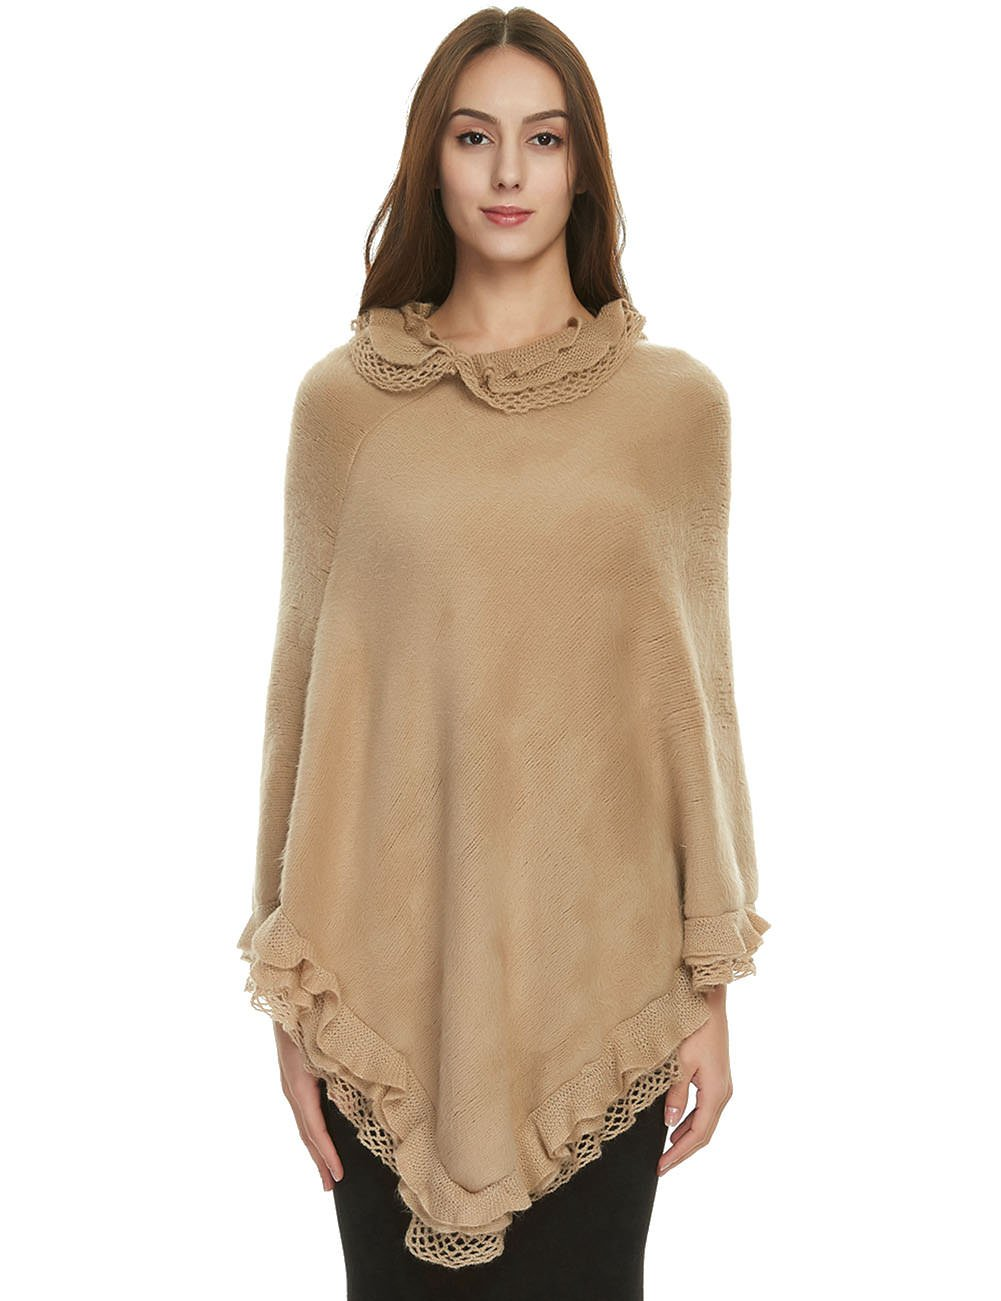 Ferand Women's Ruffle Lace Soft Poncho Sweater Warm Pullover Cape